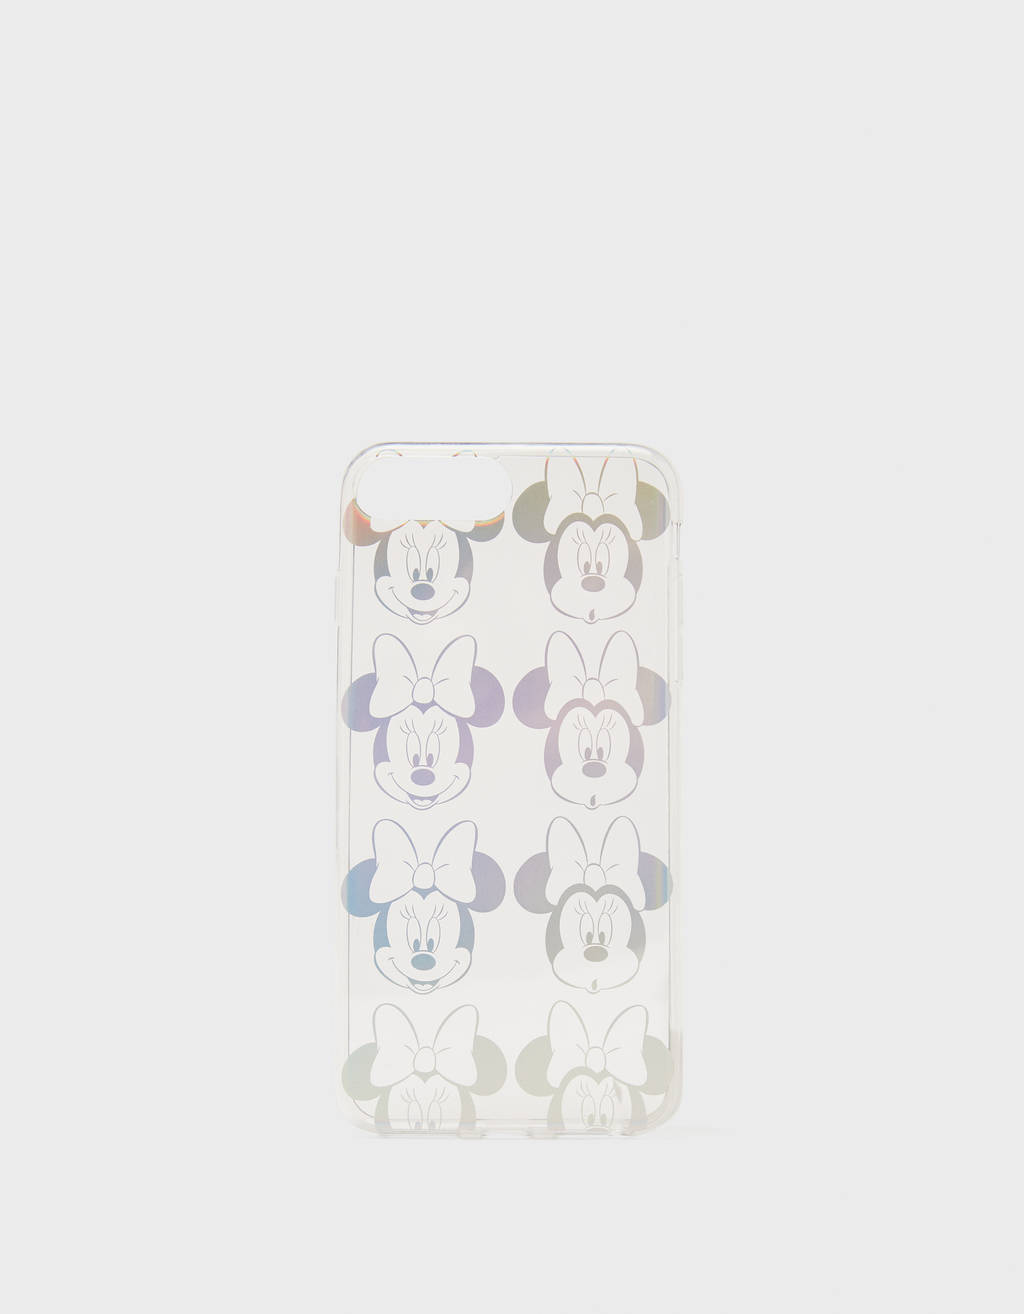 Carcasa Mickey iPhone 6 plus / 7 plus / 8 plus